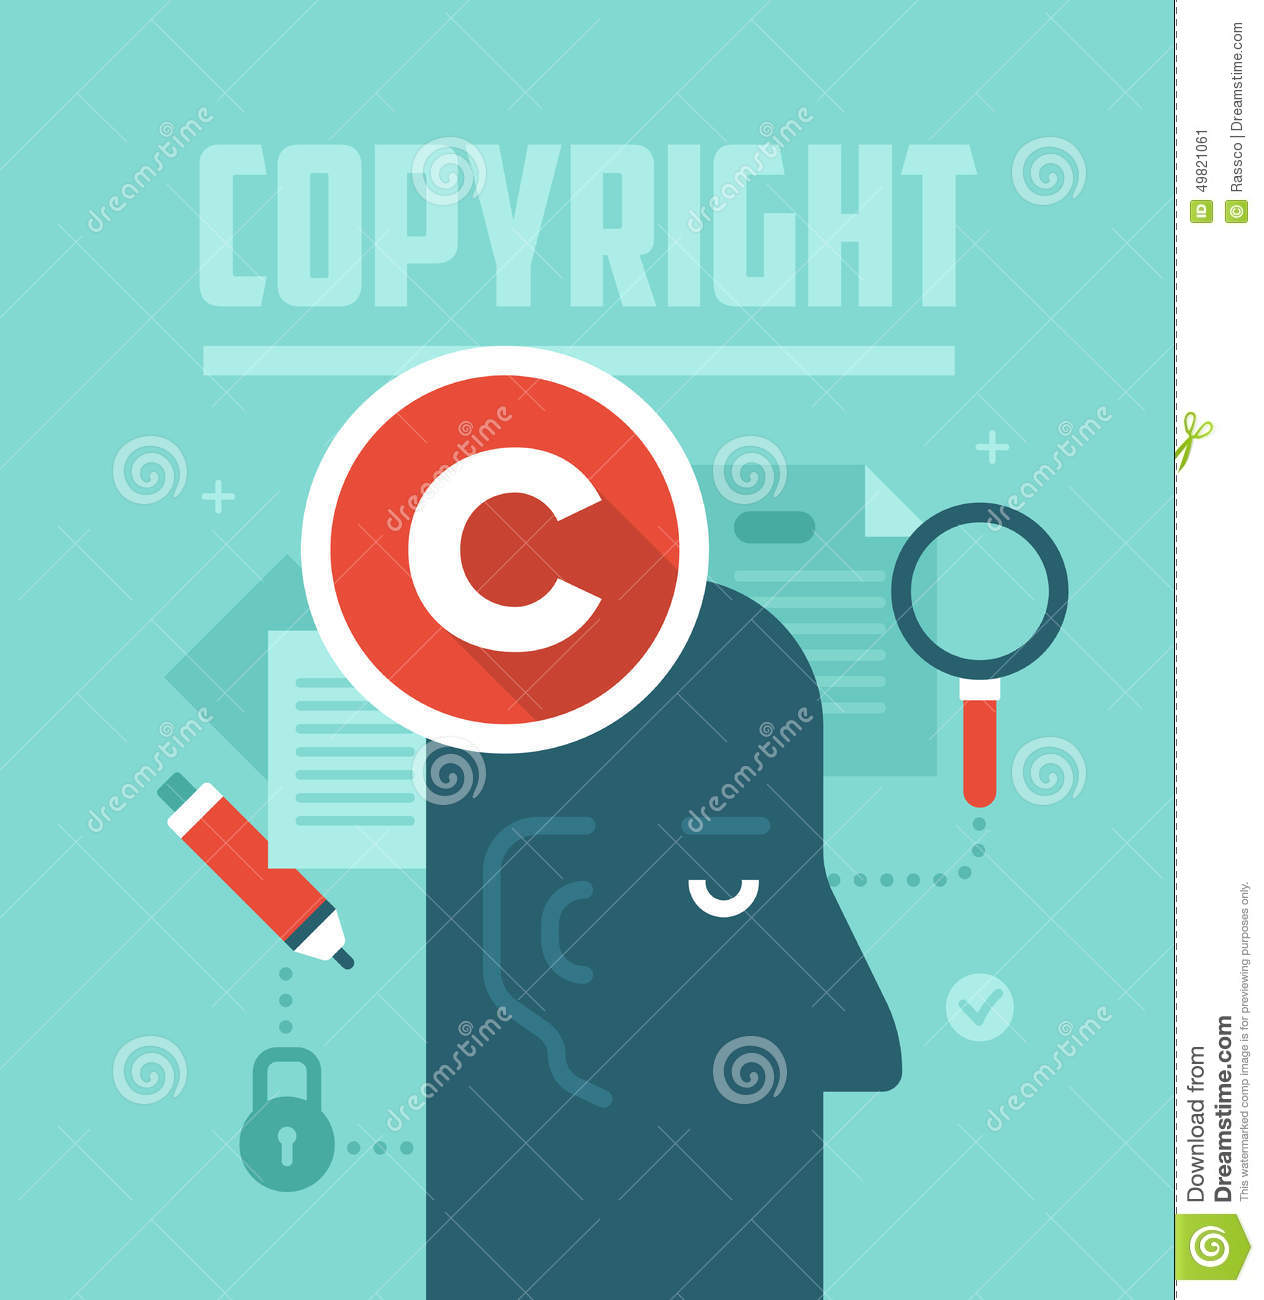 Intellectual Property Rights: Copyrighting Concept Stock Vector. Illustration Of Right